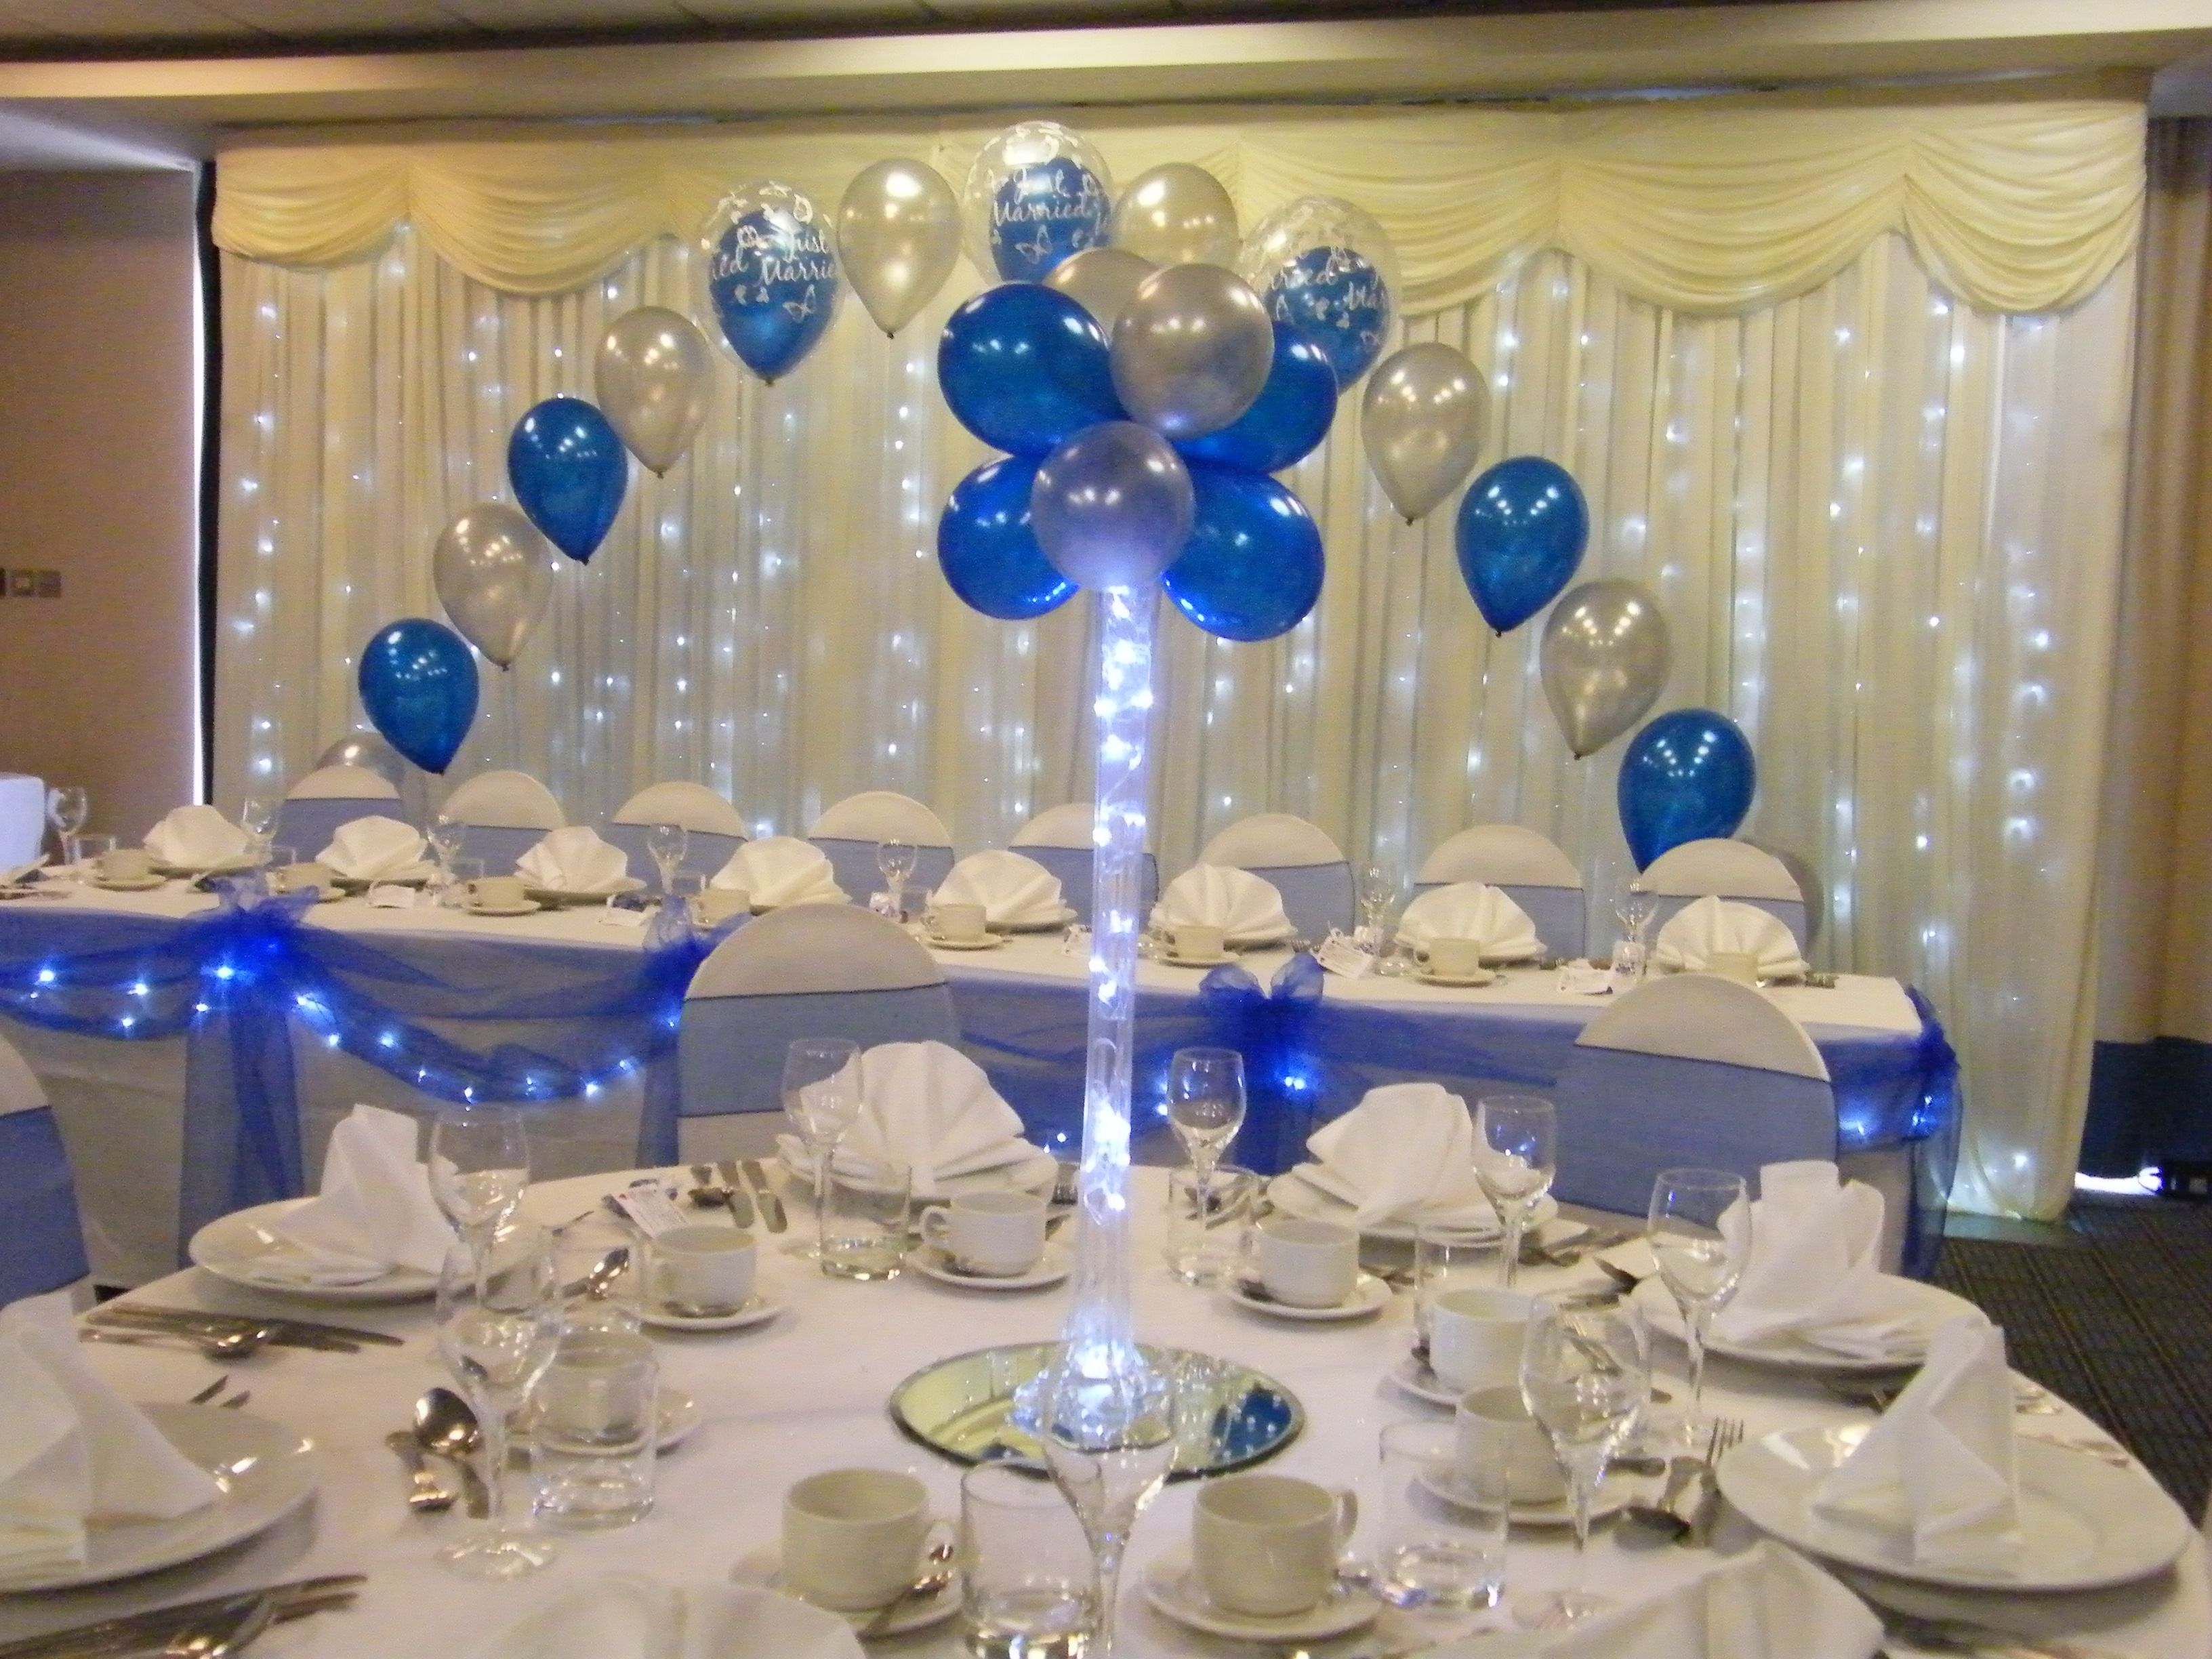 Decoration Dressing Vase Balloon Tree In Royal Blue And Silver With Table